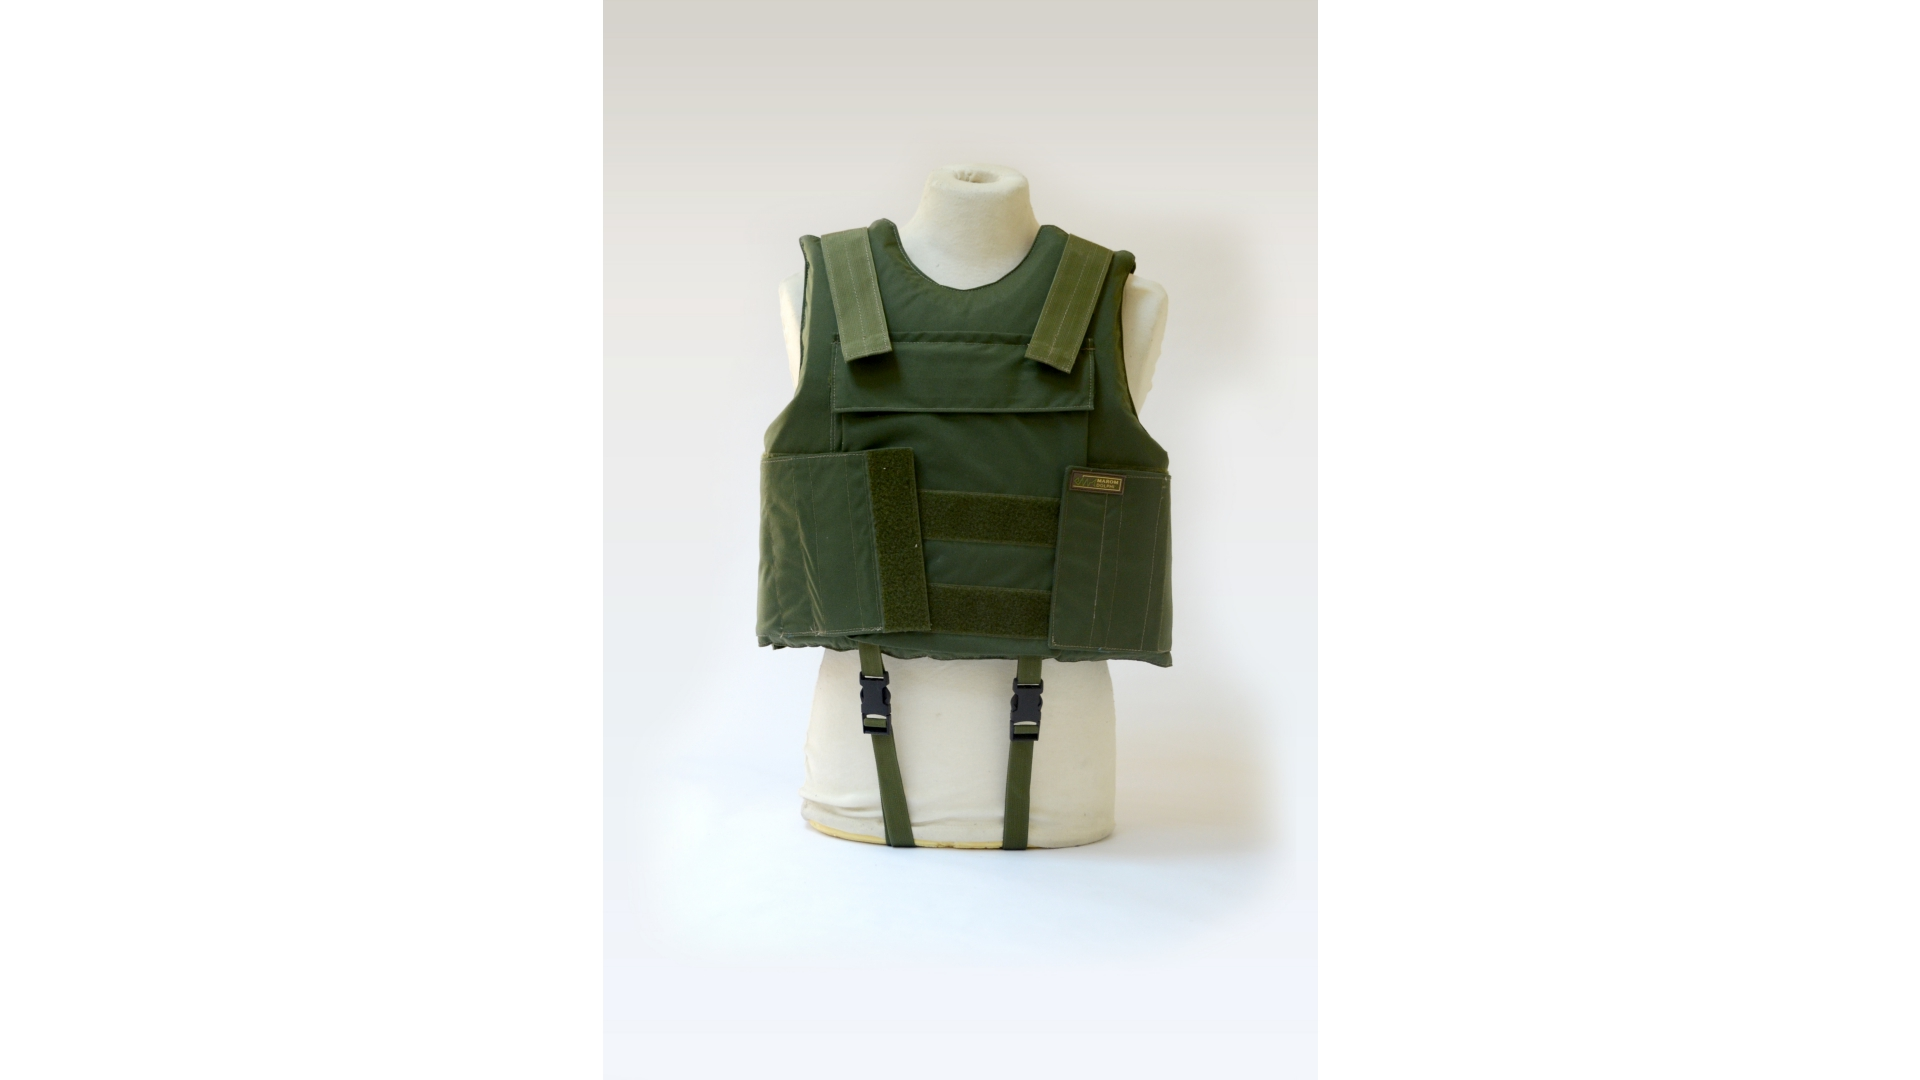 Body Armor Vest with flotation capability